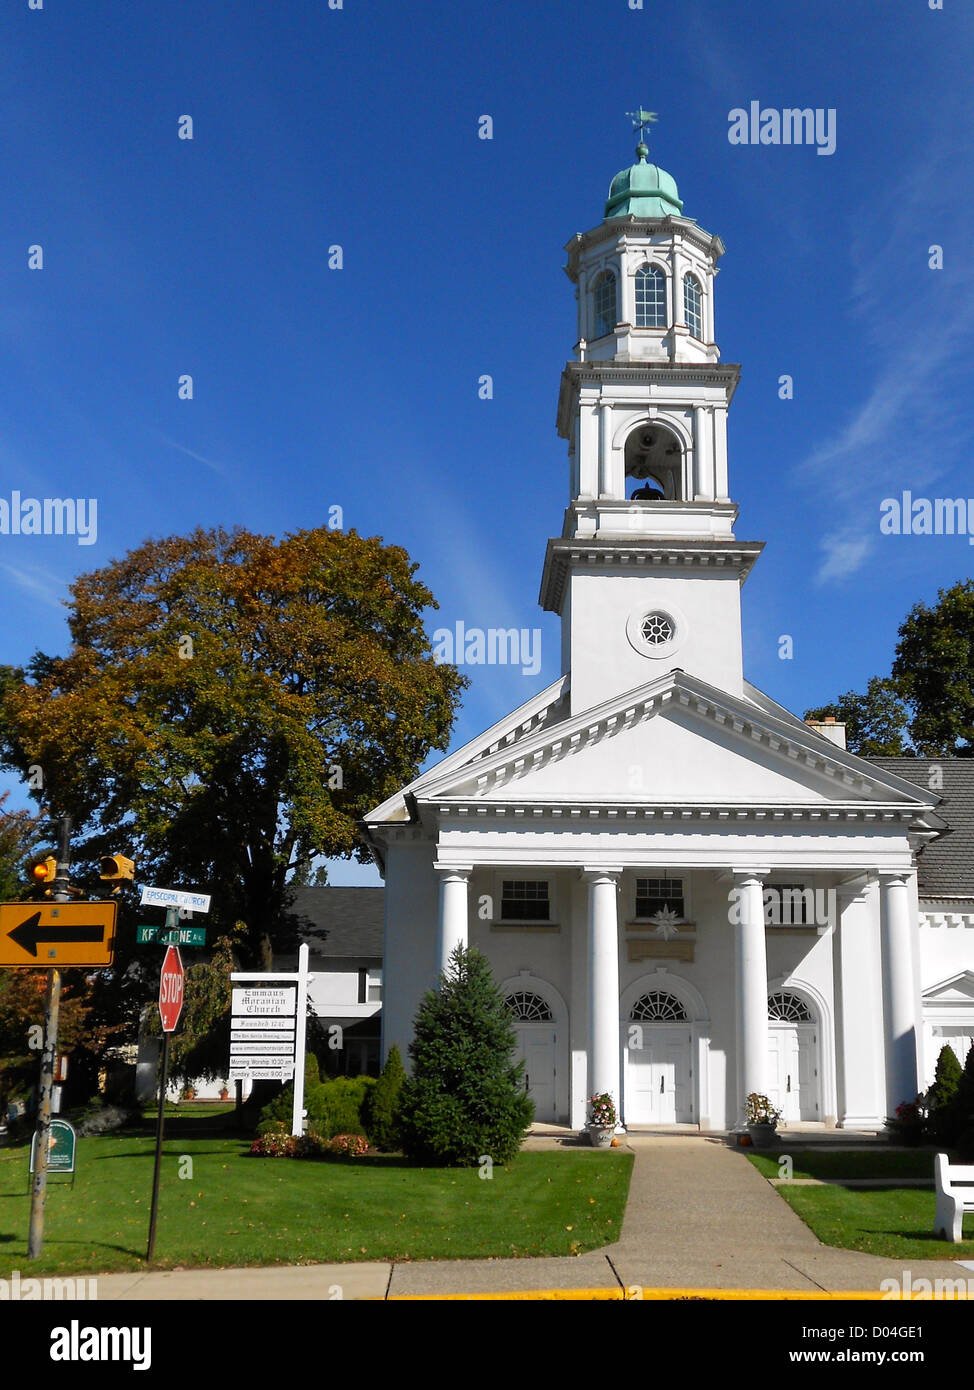 Moravian Church in Emmaus, Lehigh County, Pennsylvania - the area is a hotbed of Moravianism! - Stock Image